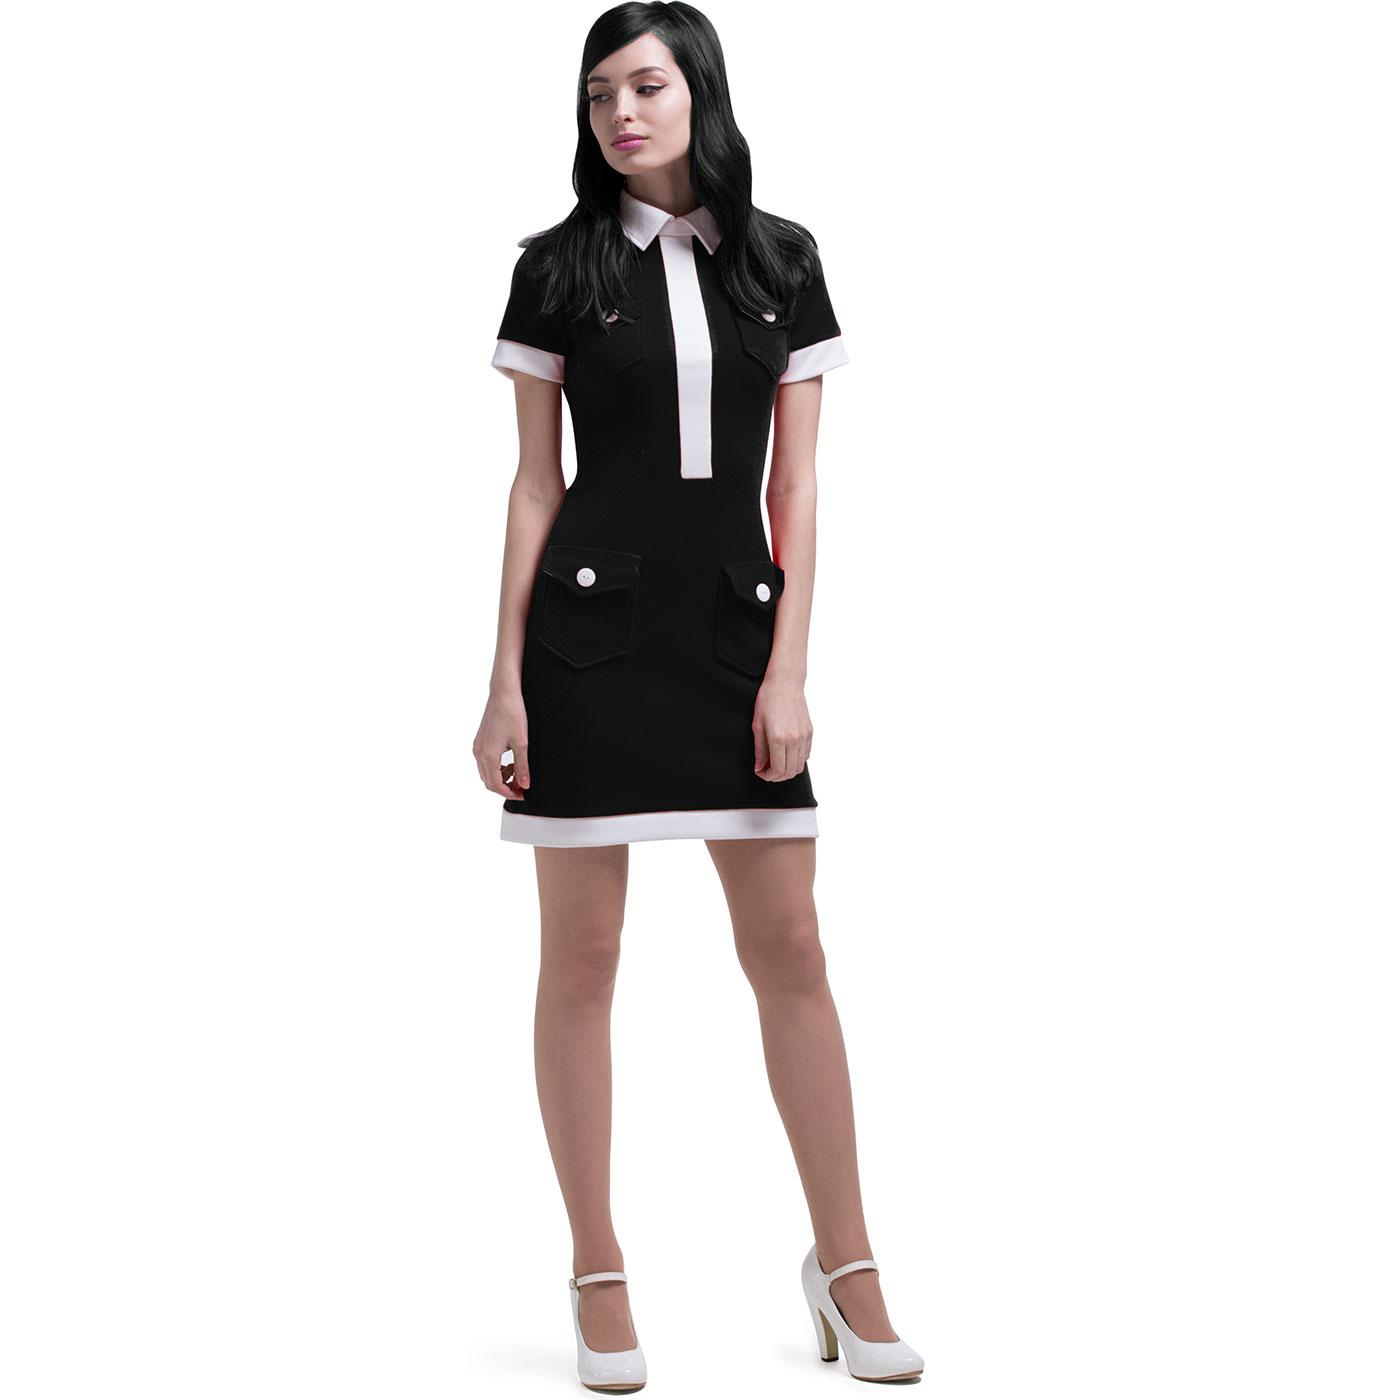 MARMALADE Retro 60s Mod Military Pocket Dress Blk